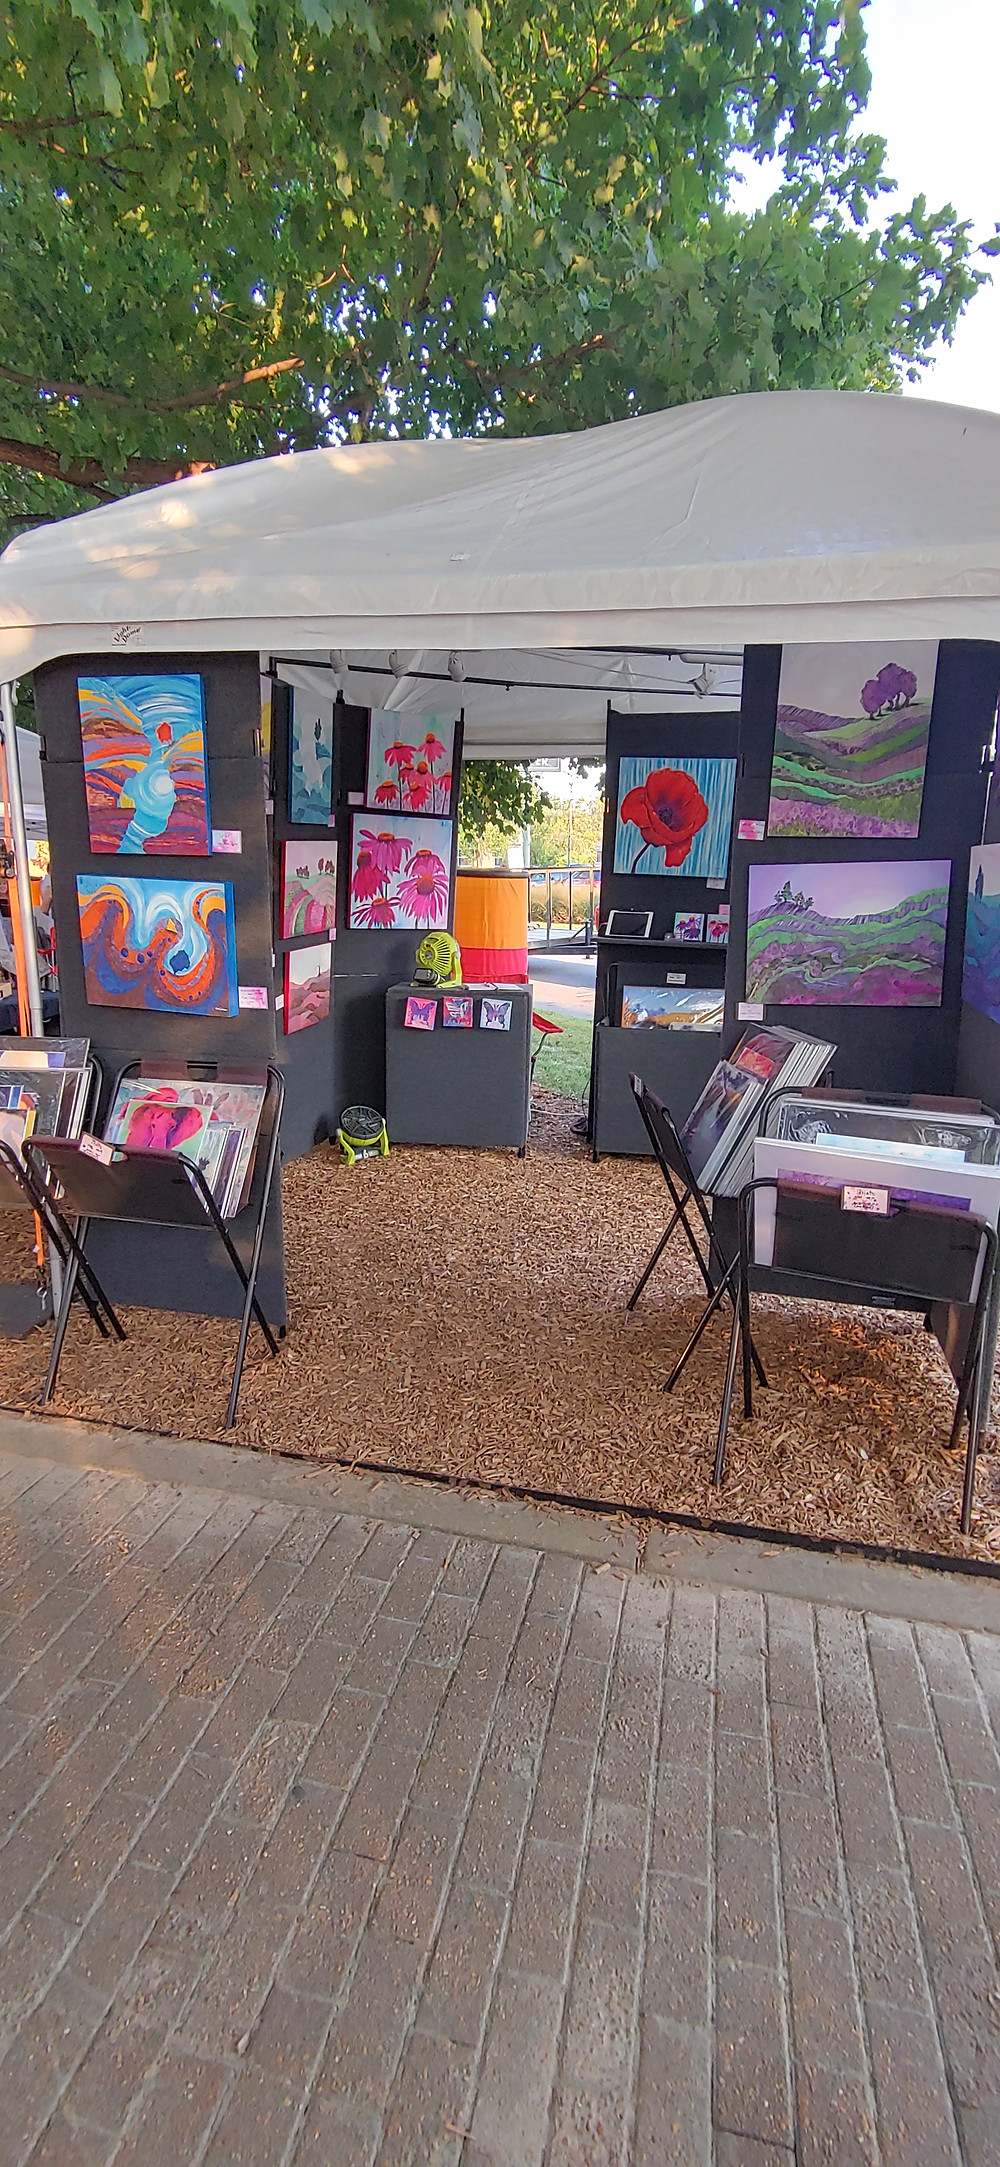 Lisa's booth at the Gazebo Park Artists Market